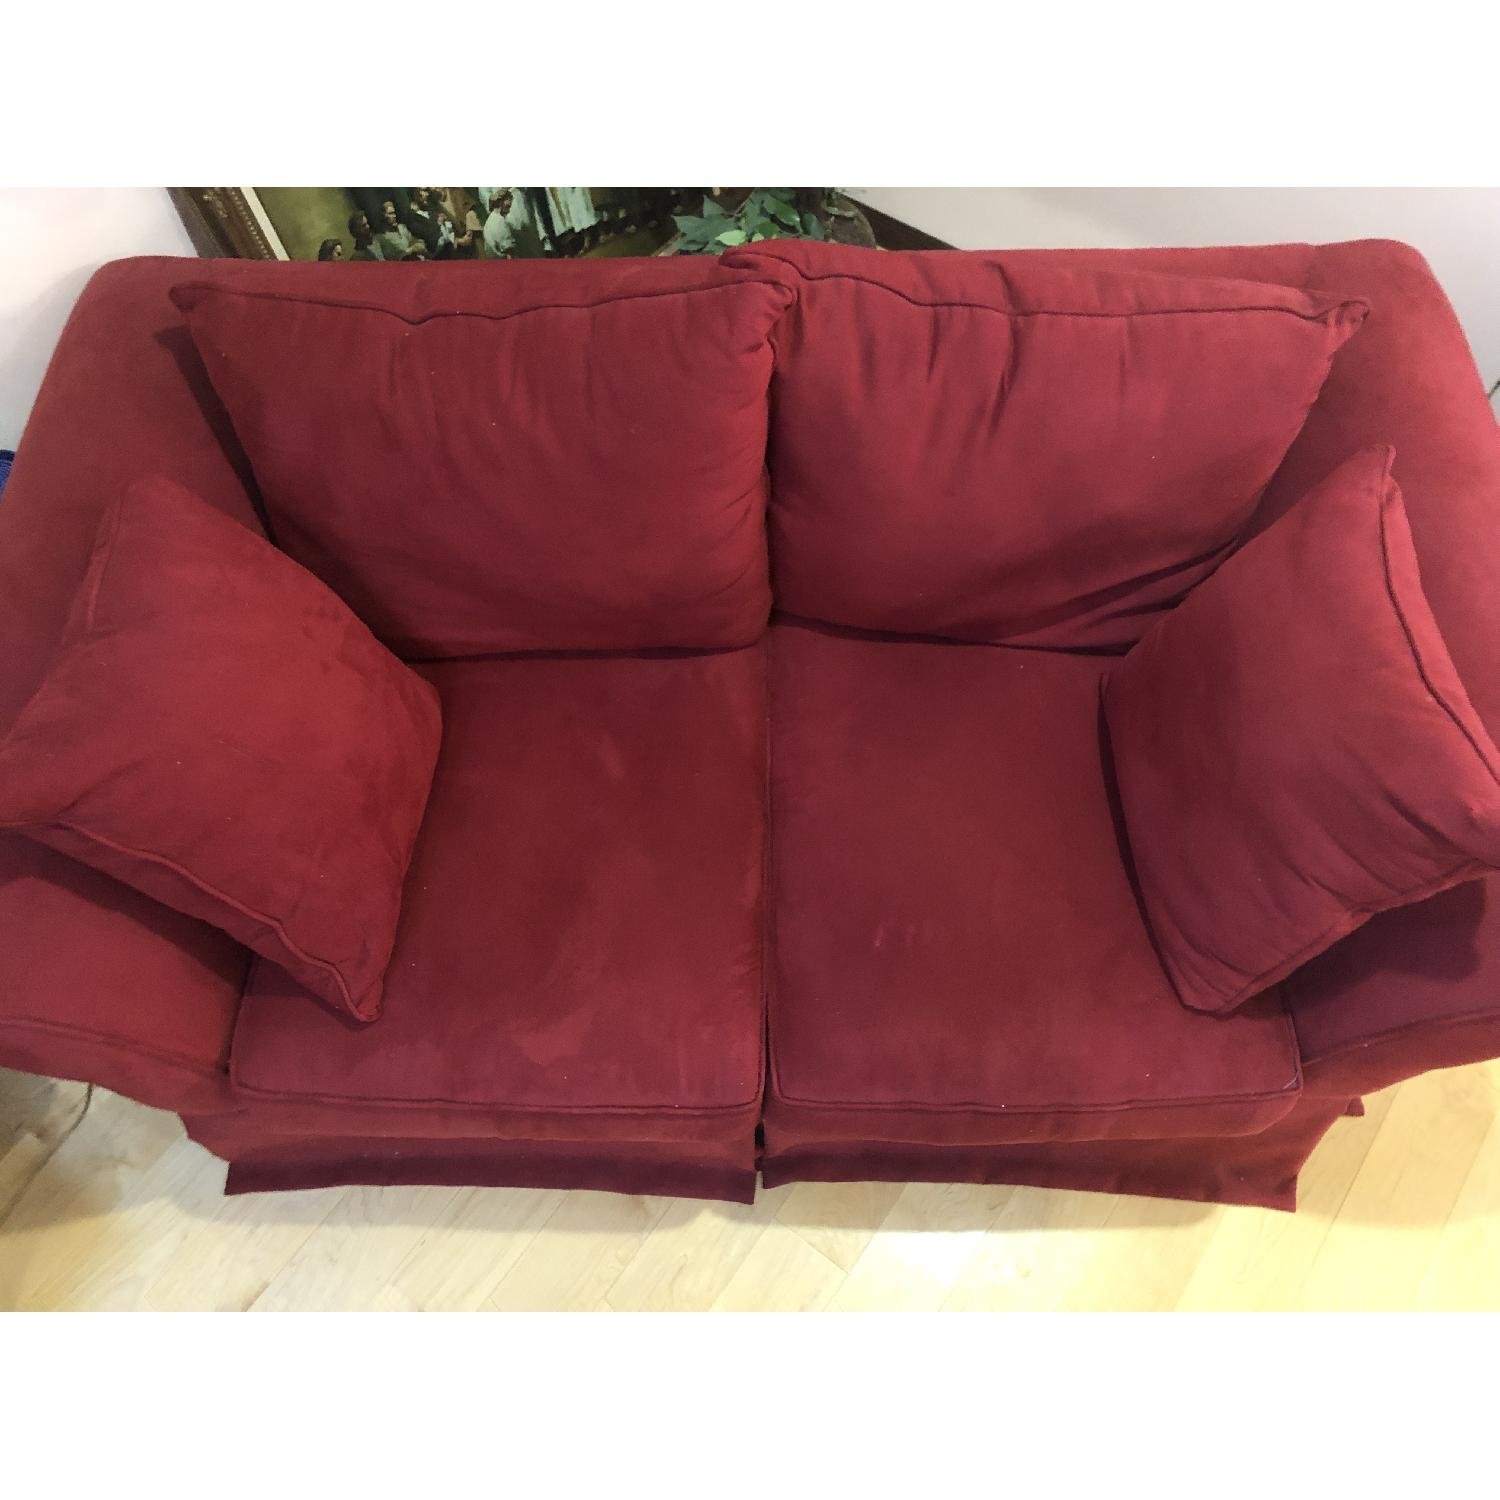 H.M. Richards Red Suede Loveseat - image-3